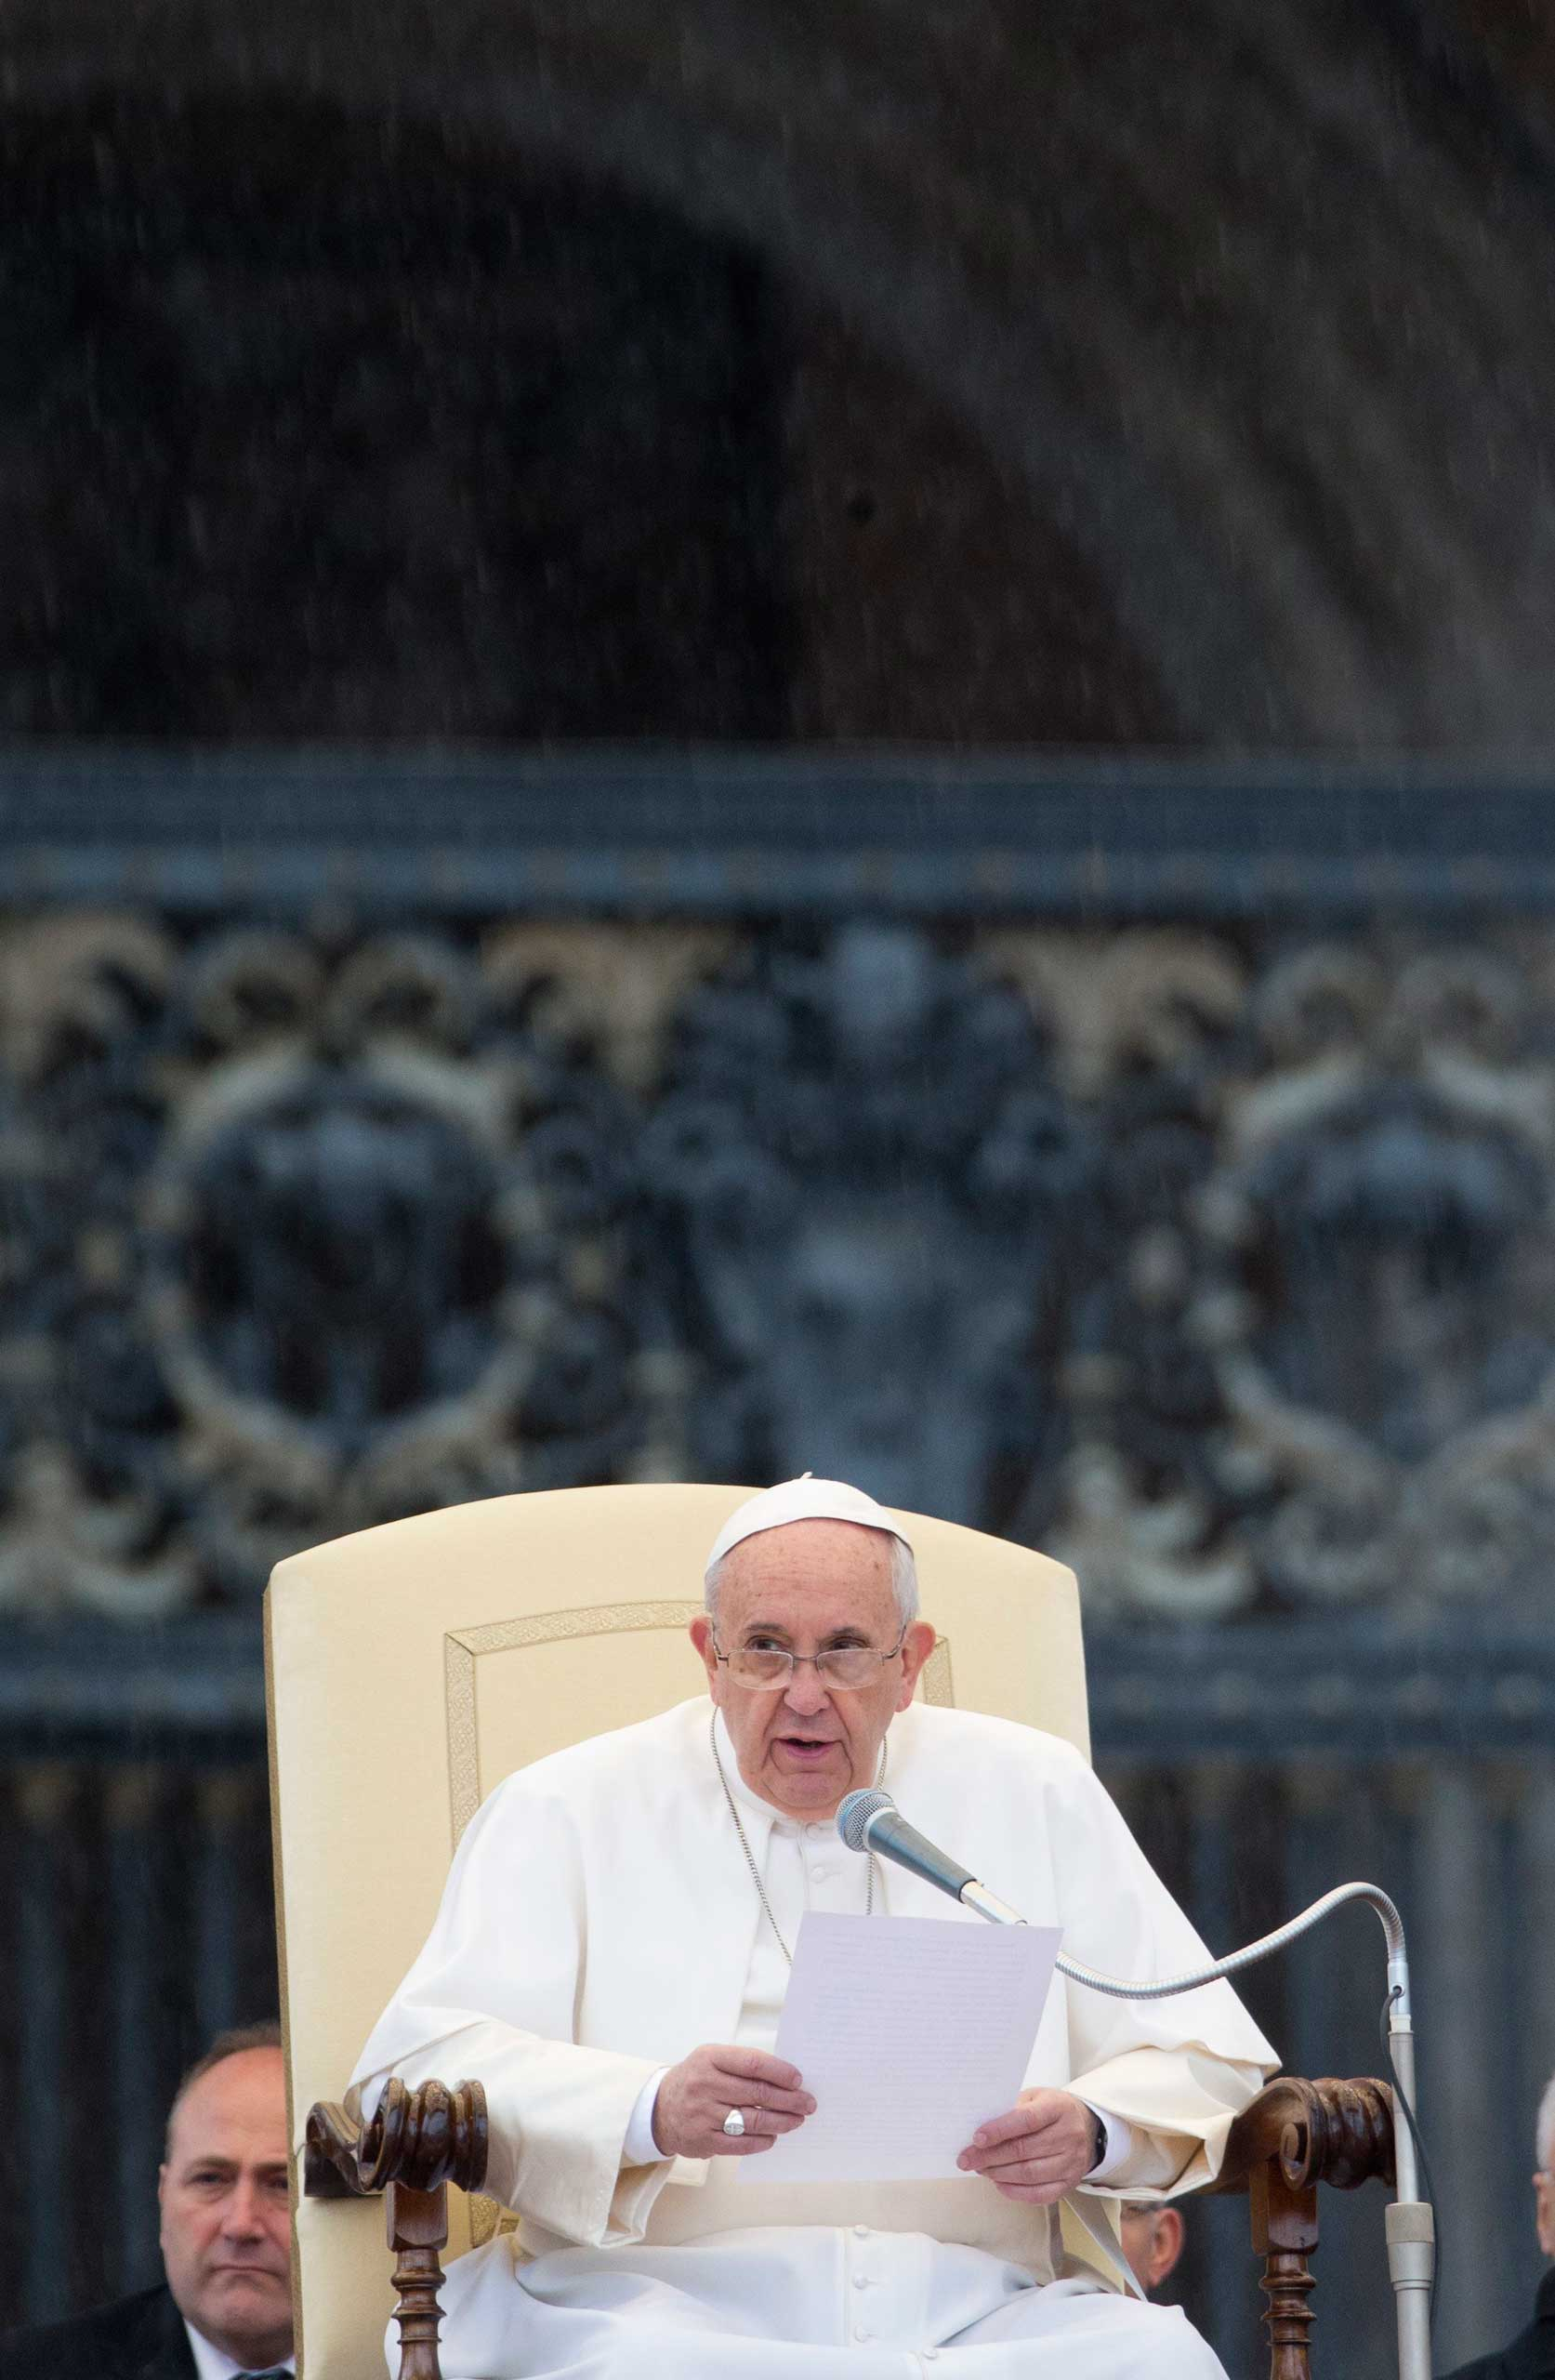 Pope Francis speaks during his weekly general audience in St. Peter's Square at the Vatican, March 25, 2015.